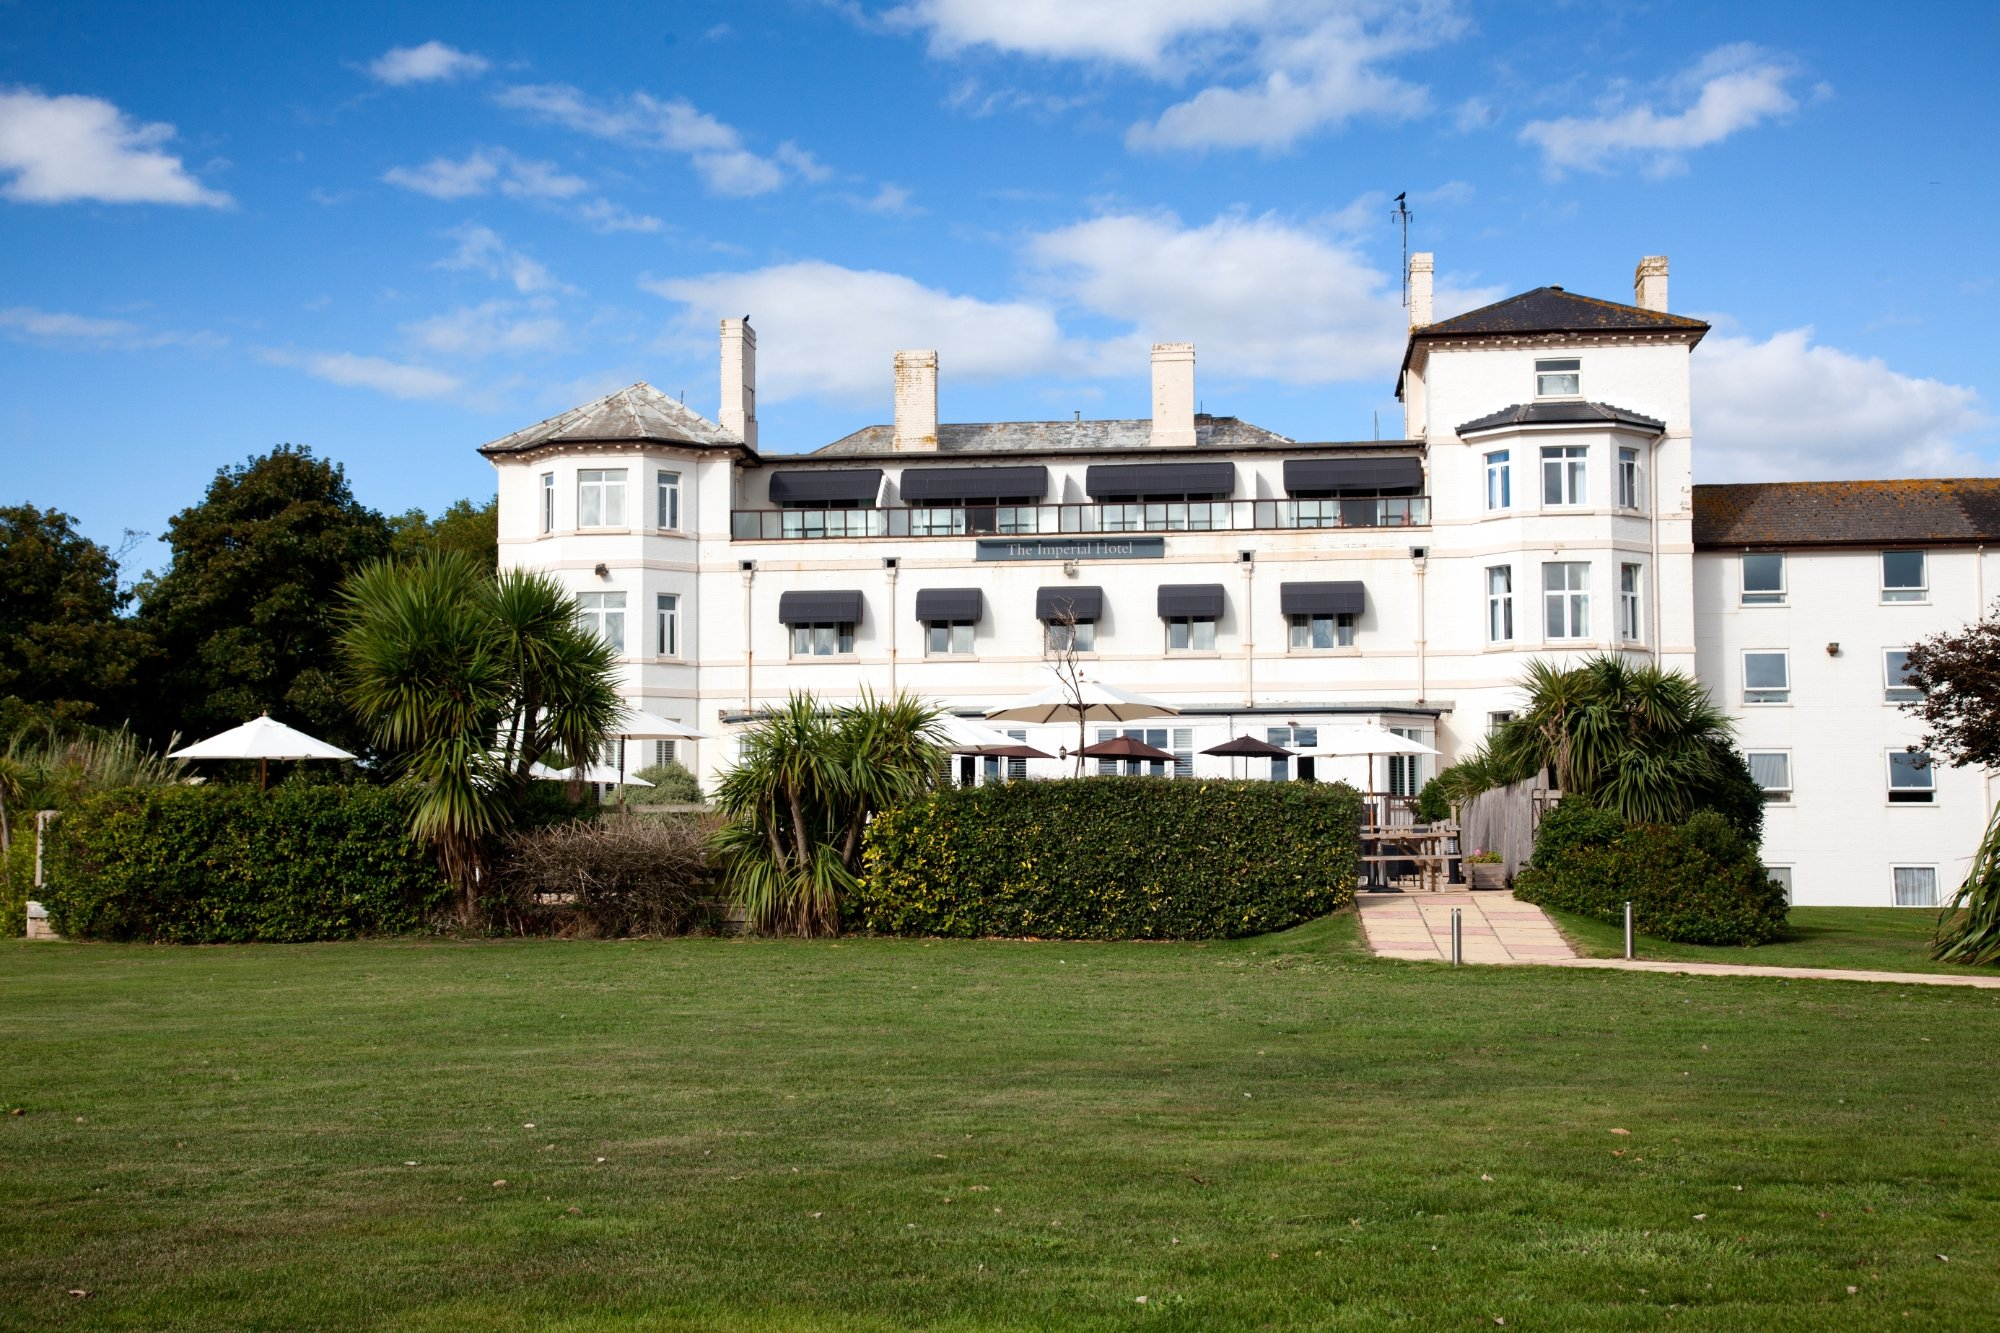 The Imperial Exmouth Hotel